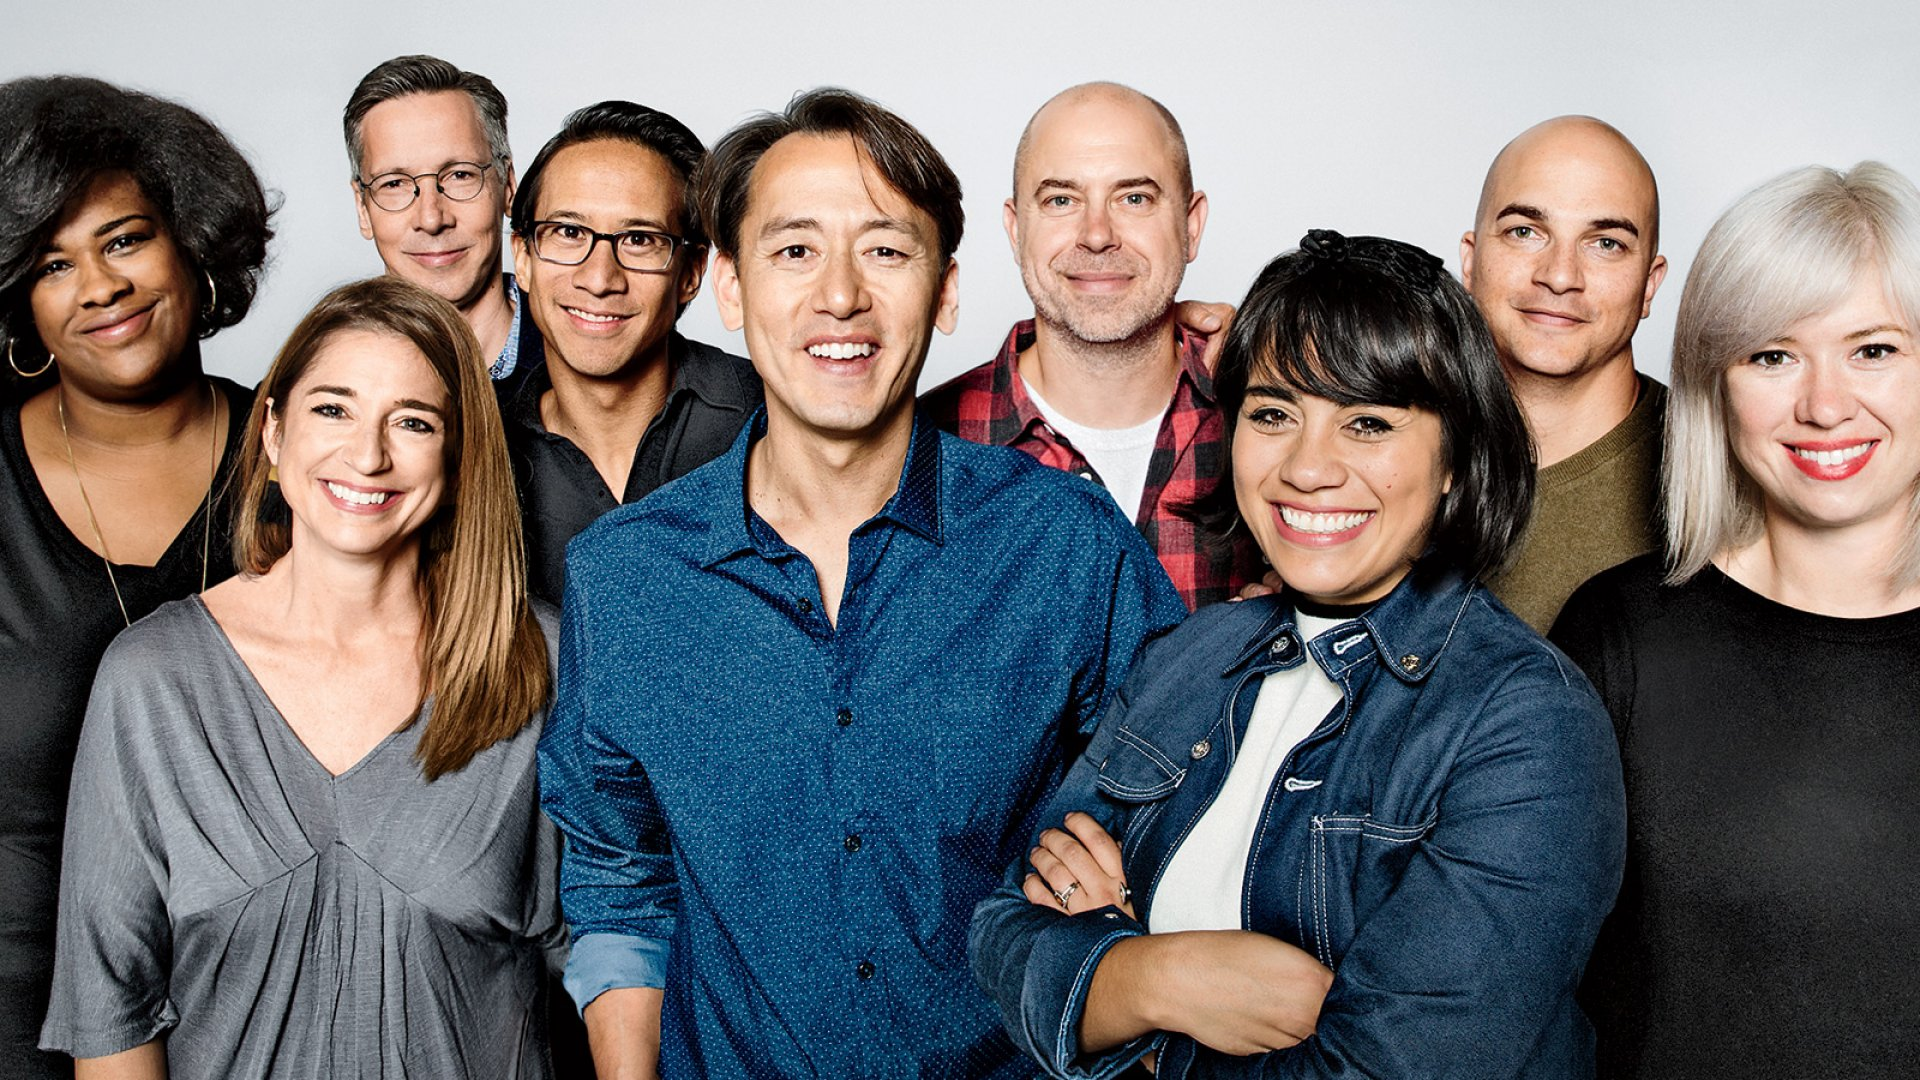 Ben Chestnut (center), Dan Kurzius (center right), and their team at MailChimp built an amazing business and became <i>Inc.</i>'s Company of the Year. It only took them 17 years.